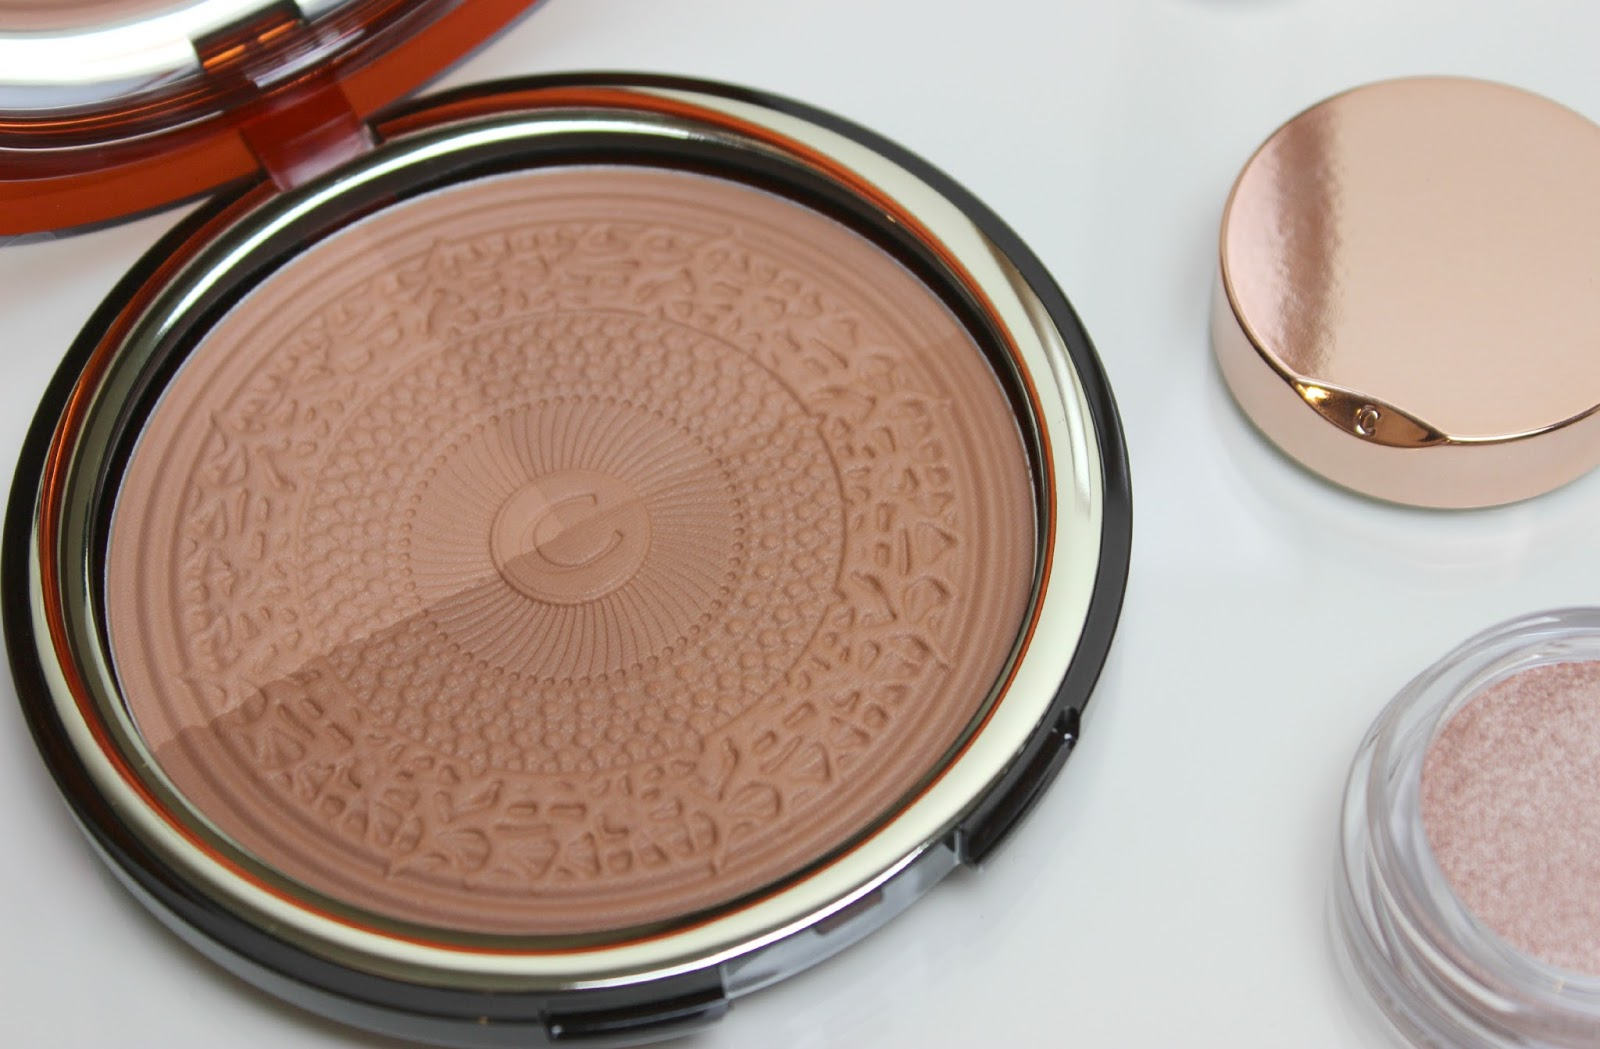 A picture of Clarins Aquatic Treasures Summer Bronzing Compact